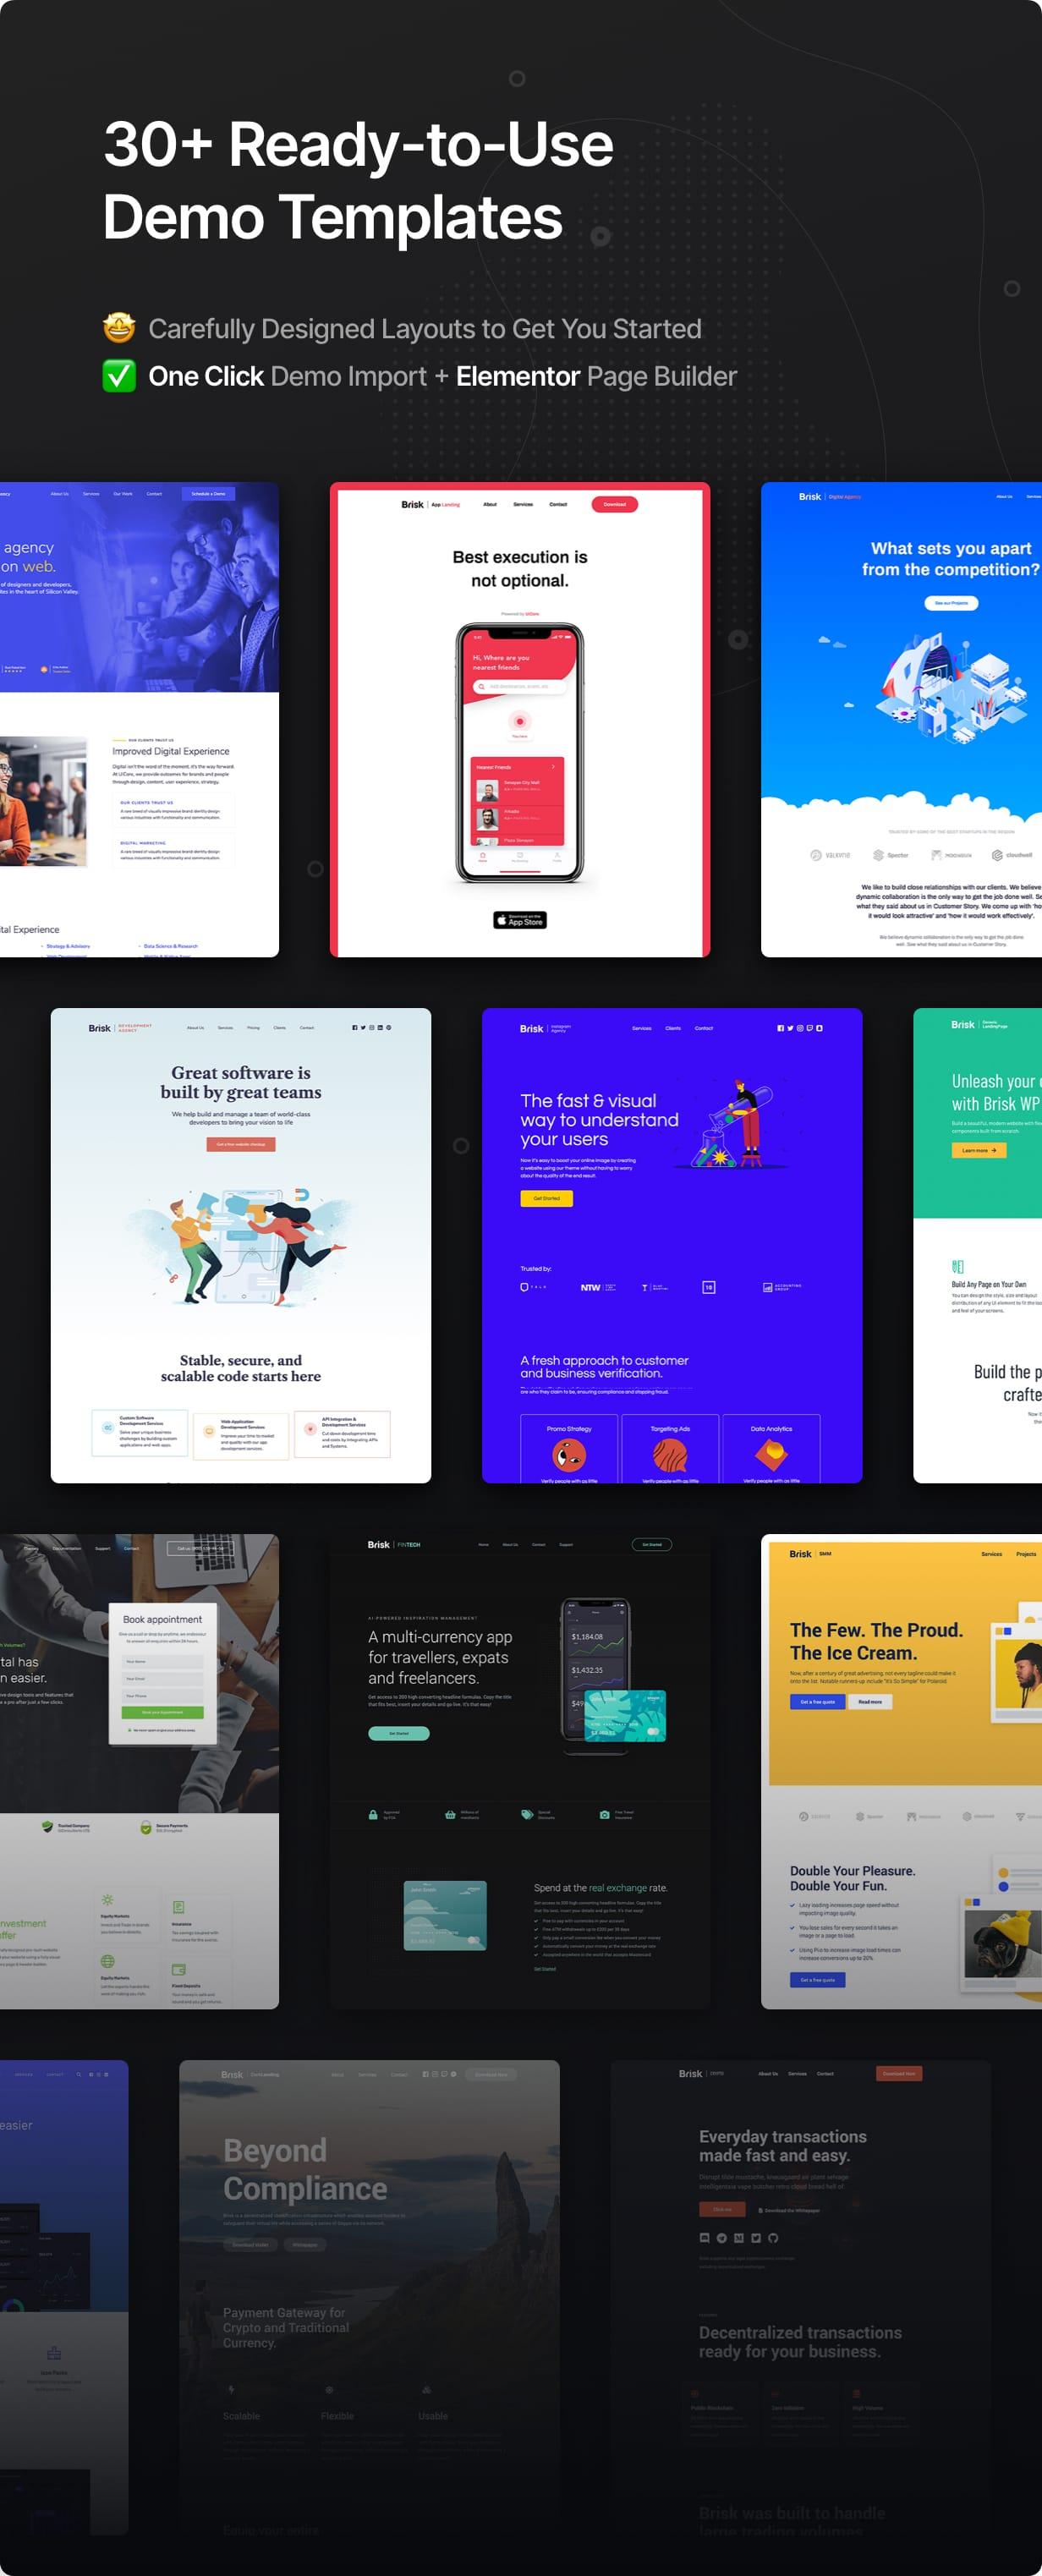 30+ Ready-to-Use Demo Templates